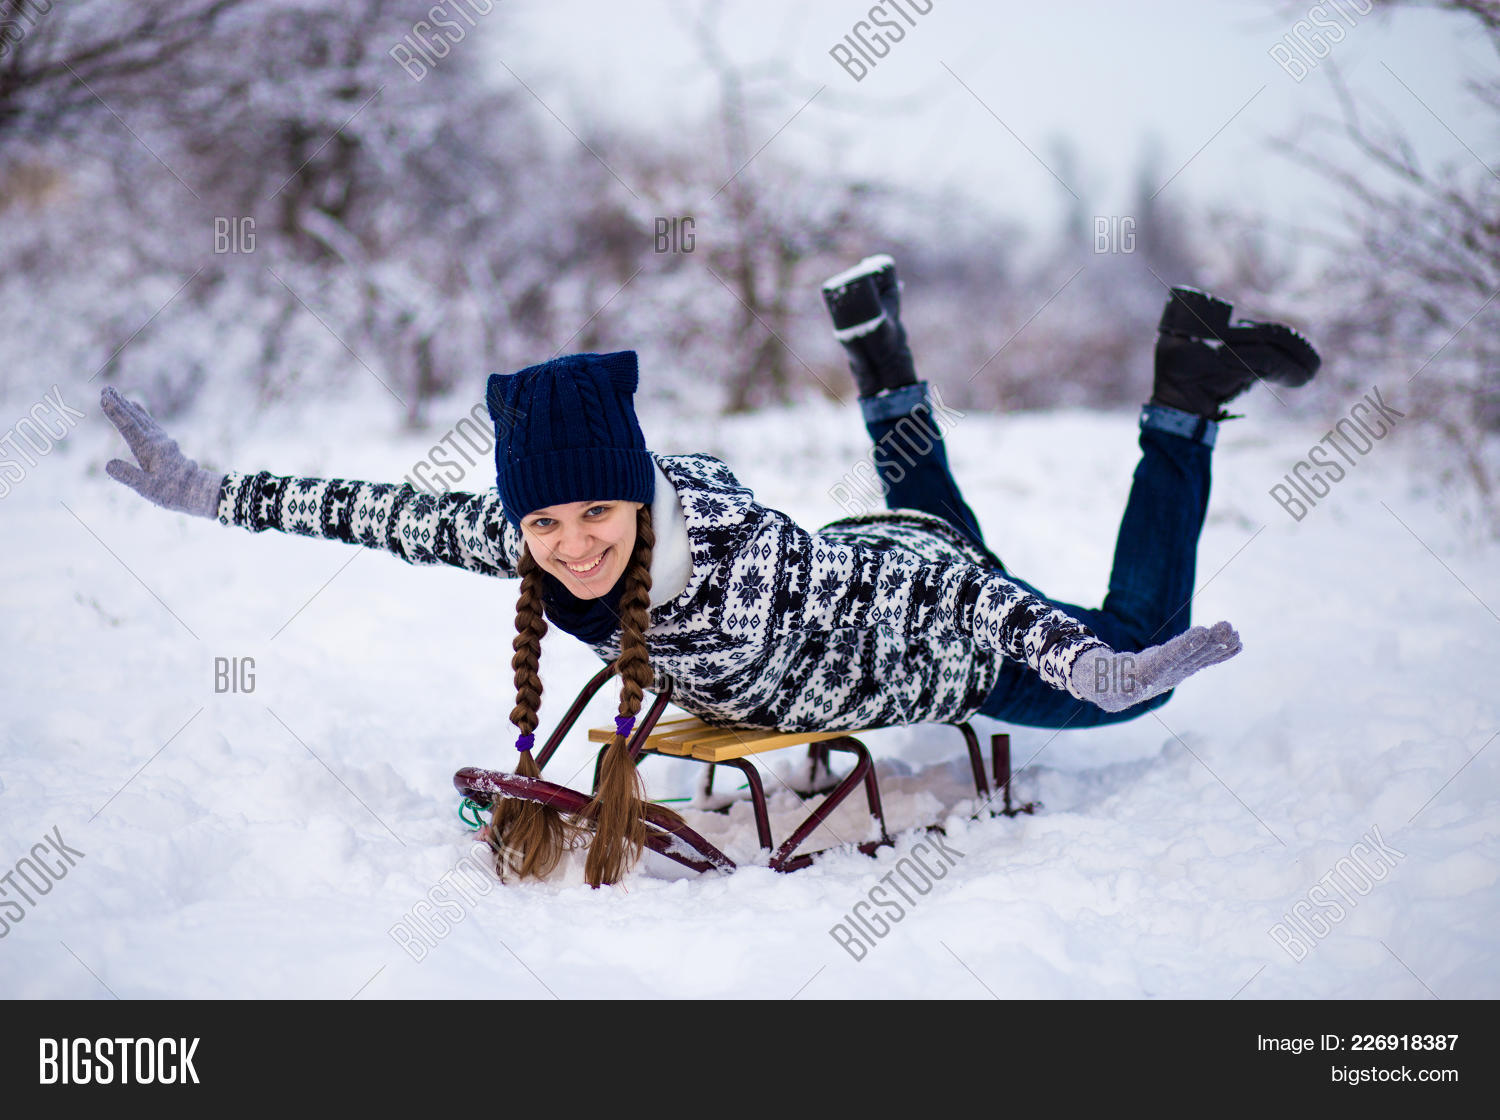 Crazy Woman Enjoy Image Photo Free Trial Bigstock